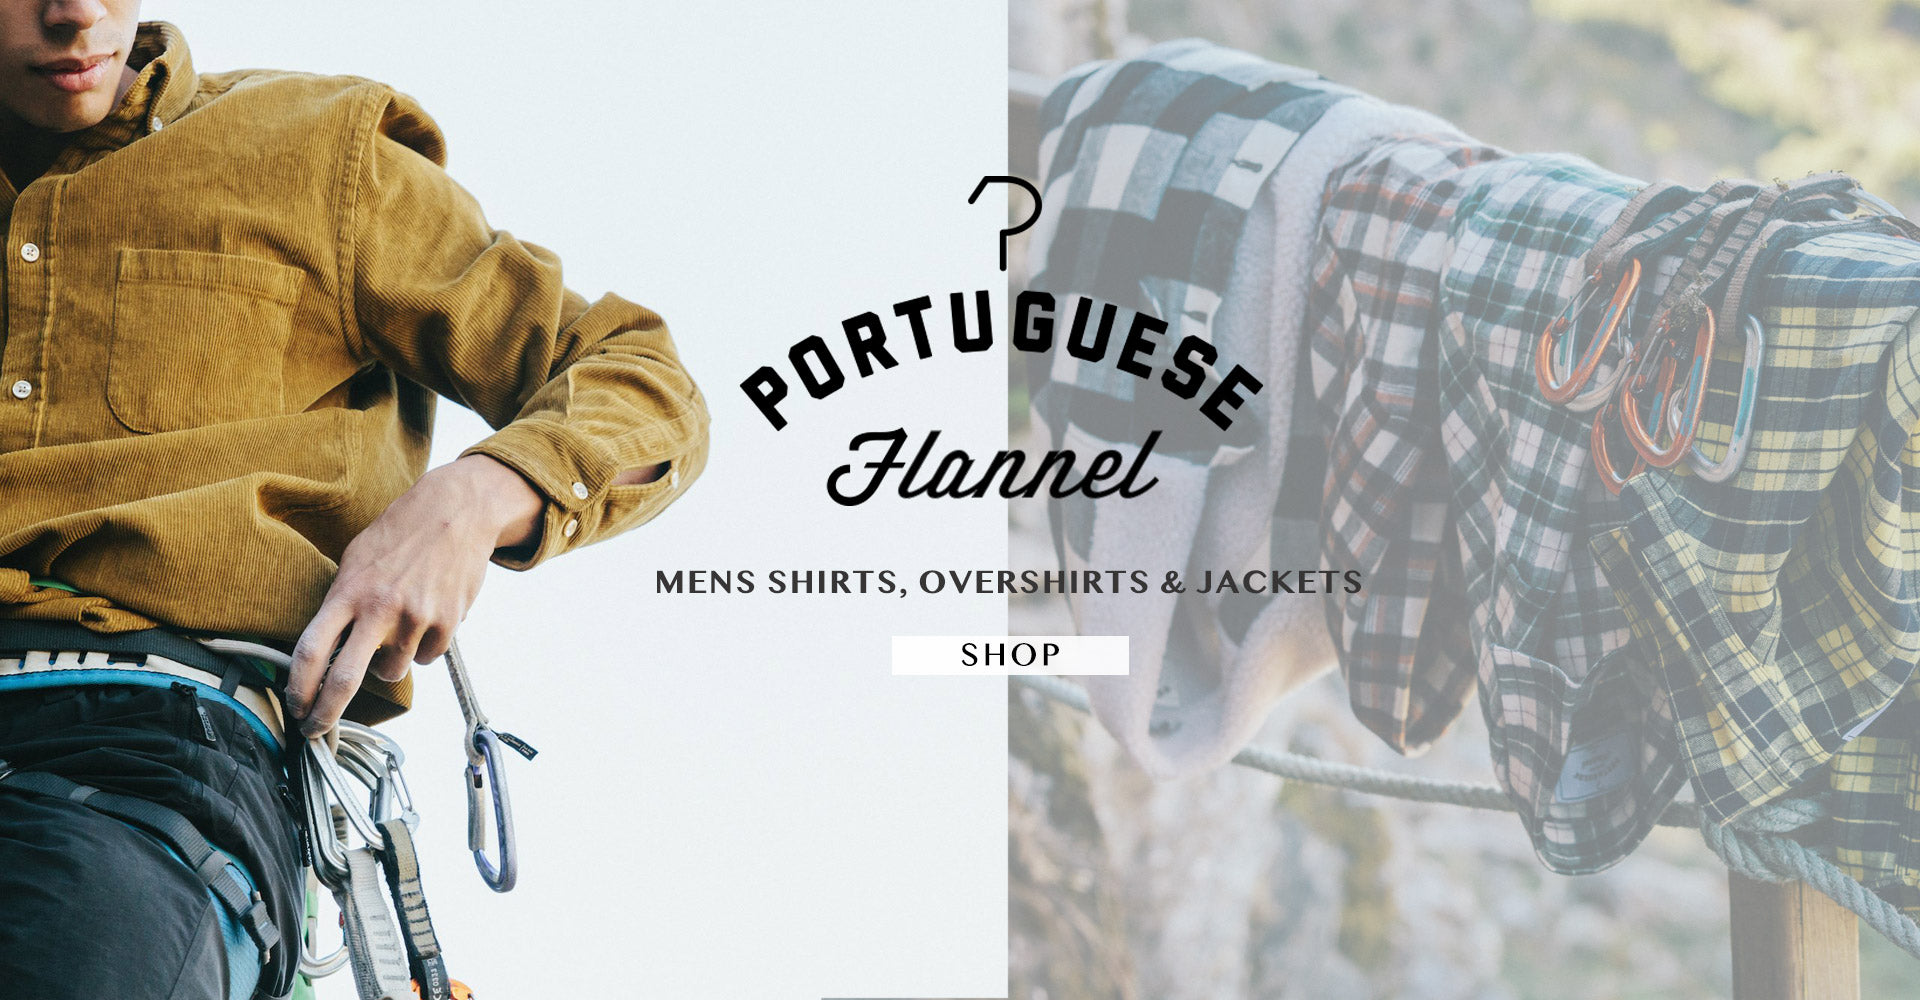 Portuguese Flannel Mens Shirts, Overshirts & Jackets Shop the NEW Menswear Collection Shop the NEW Portuguese Flannel Menswear Collection